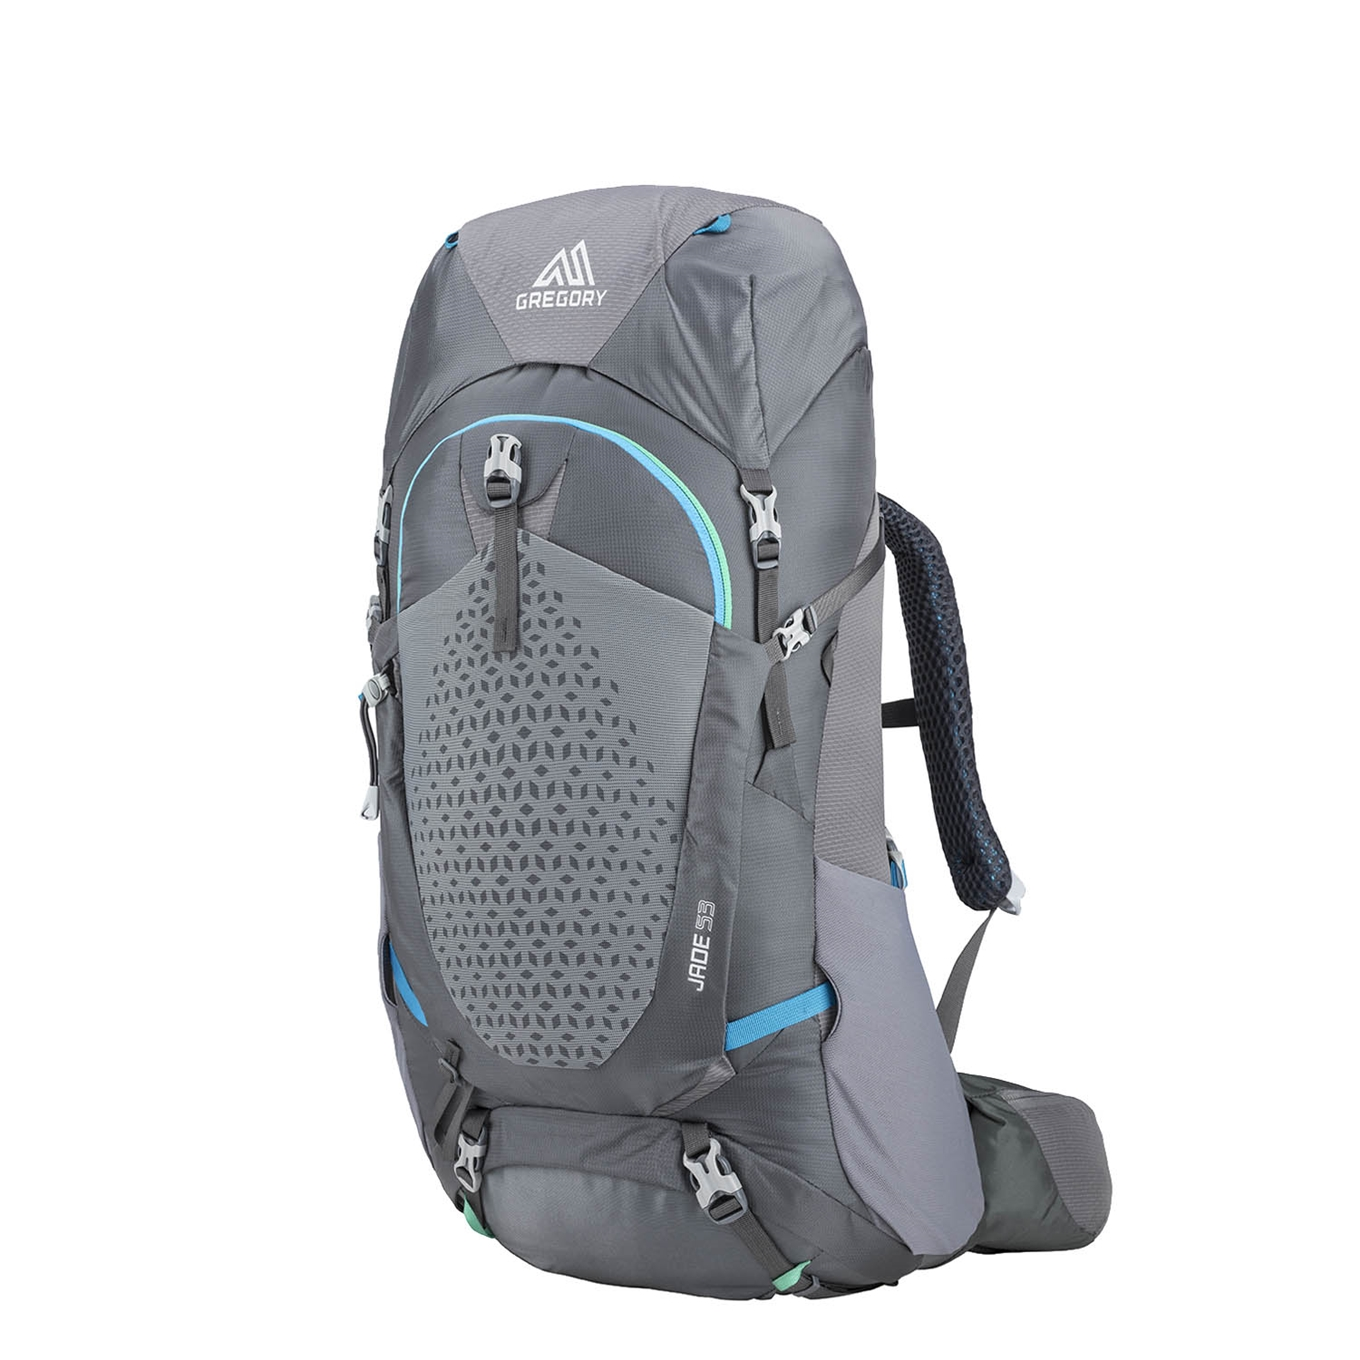 Gregory Jade 53L Backpack XS/S ethereal grey backpack <br/></noscript><img class=